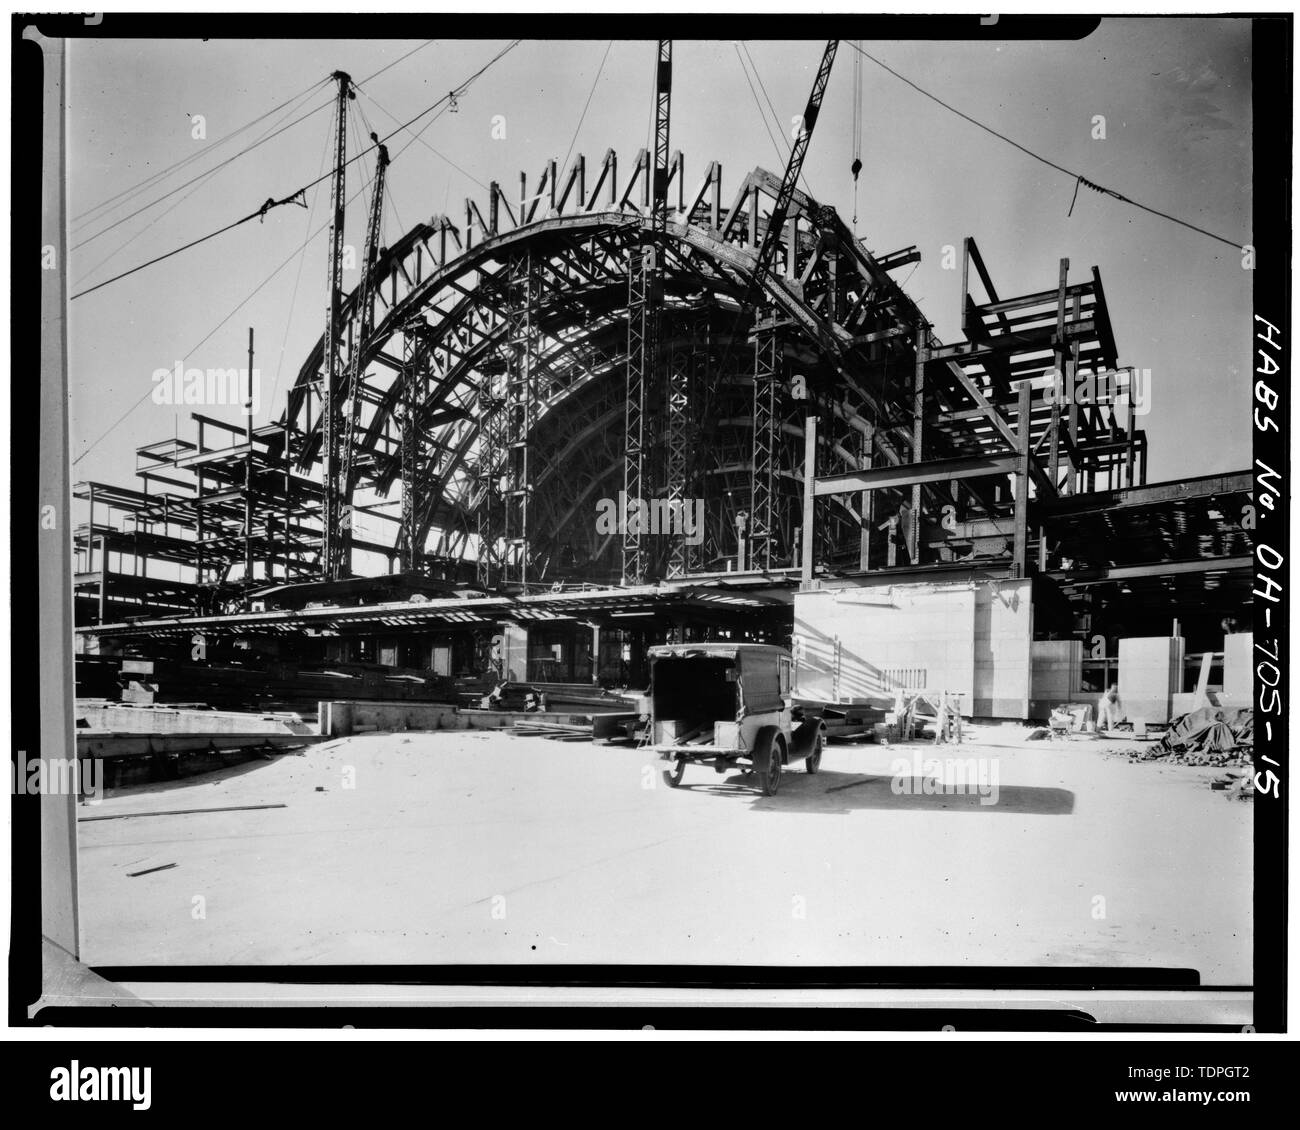 c. 1931, photographer unknown STRUCTURAL FRAMING OF DOME, LOOKING SOUTHWEST DURING CONSTRUCTION - Cincinnati Union Terminal, 1301 Western Avenue, Cincinnati, Hamilton County, OH - Stock Image